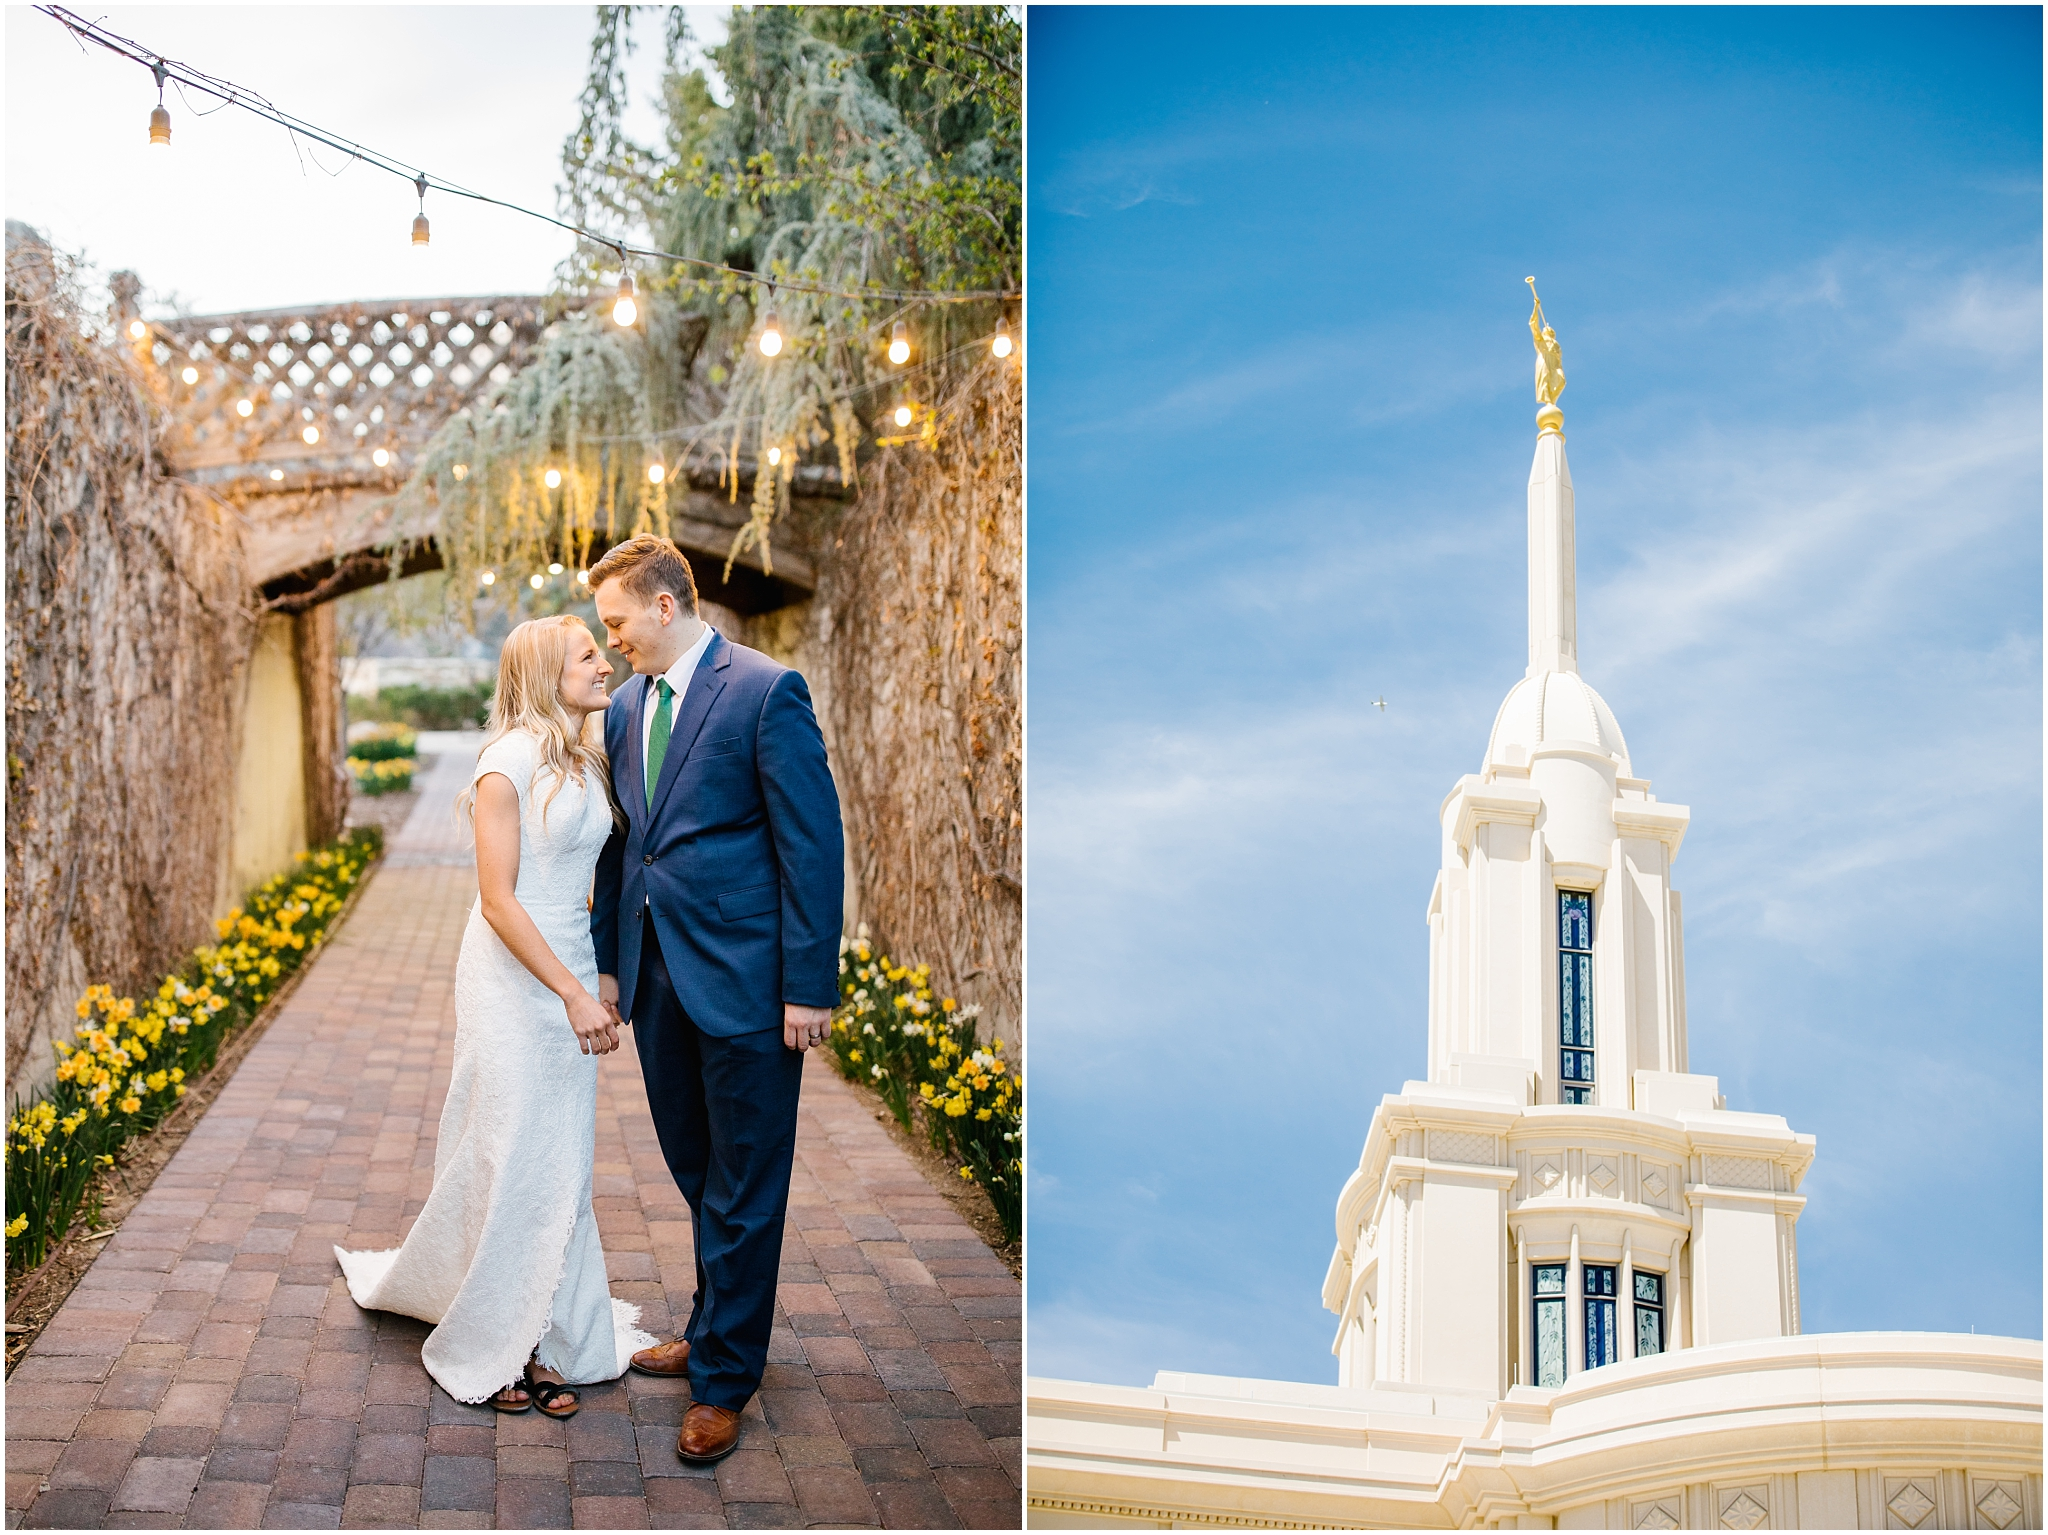 Lizzie-B-Imagery-Utah-Wedding-Photographer-Thanksgiving-Point-Payson-Temple_0025.jpg